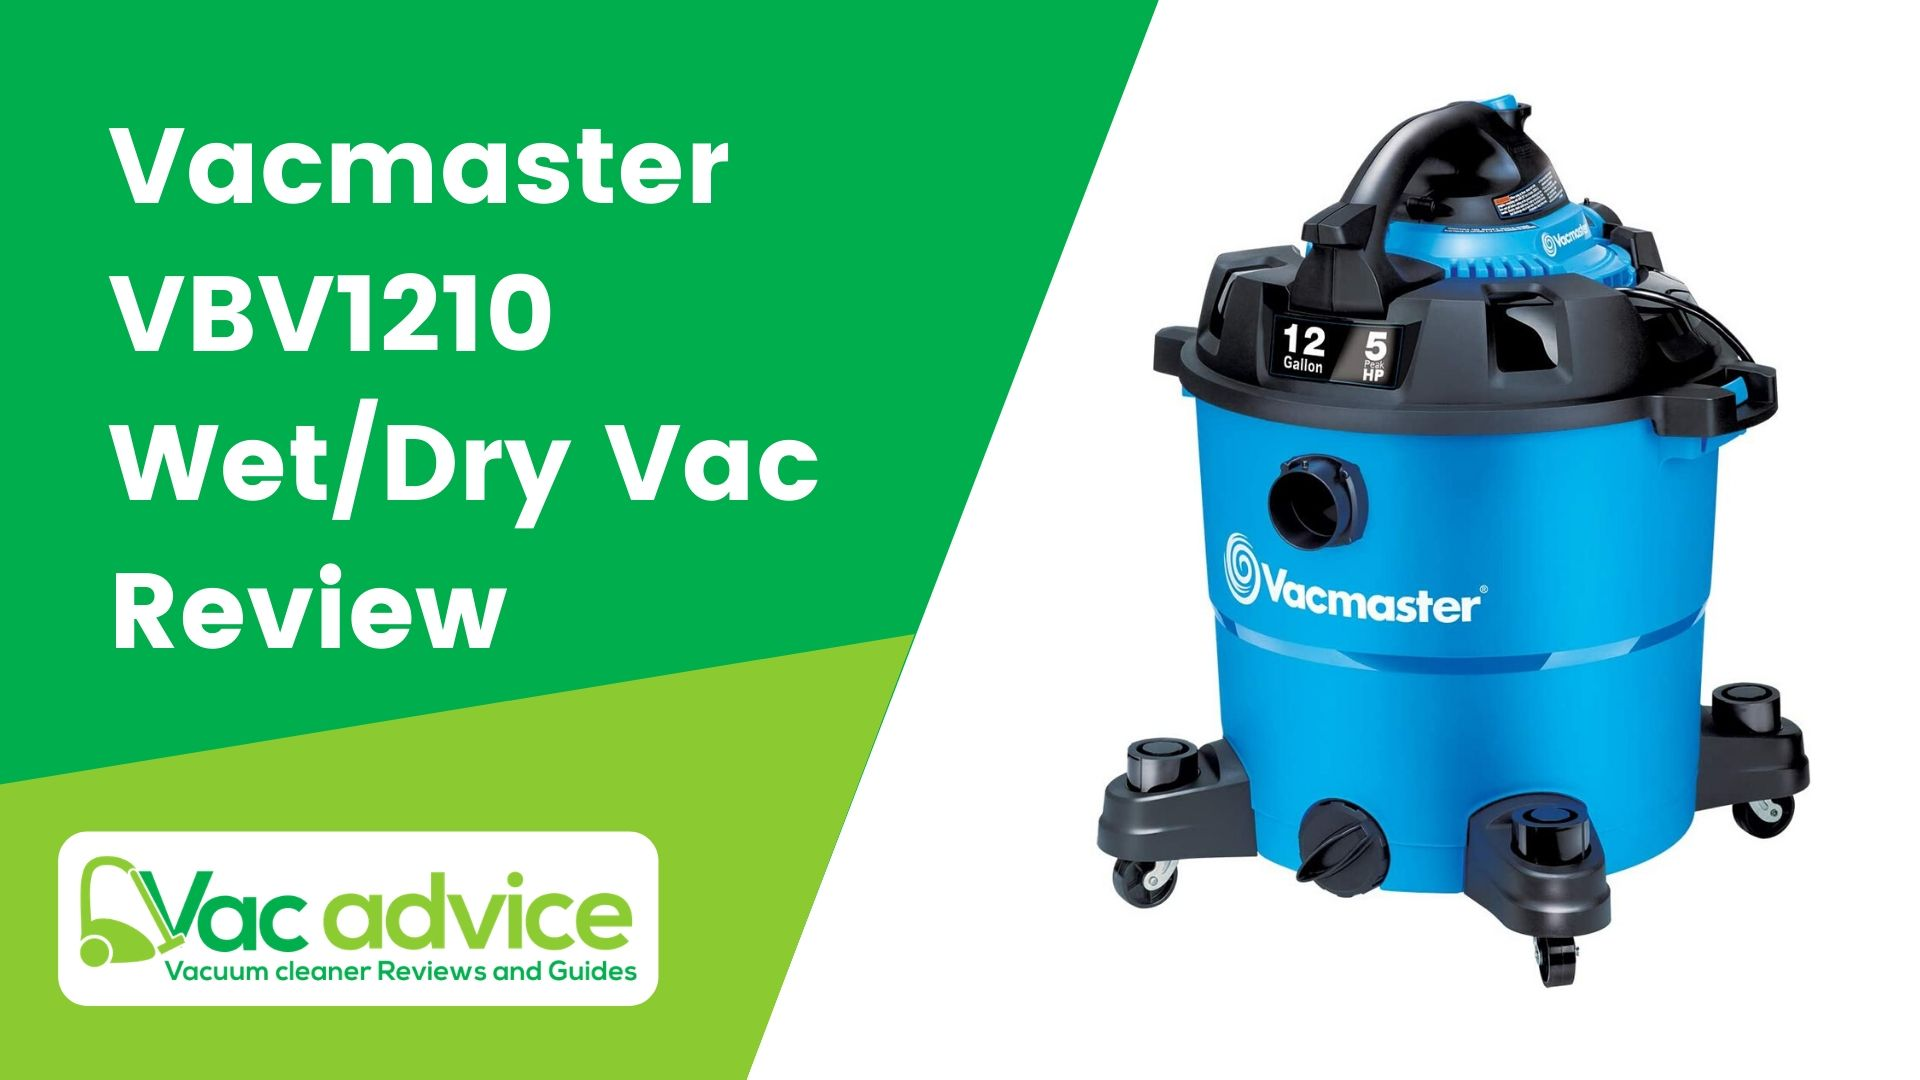 Vacmaster VBV1210 Review